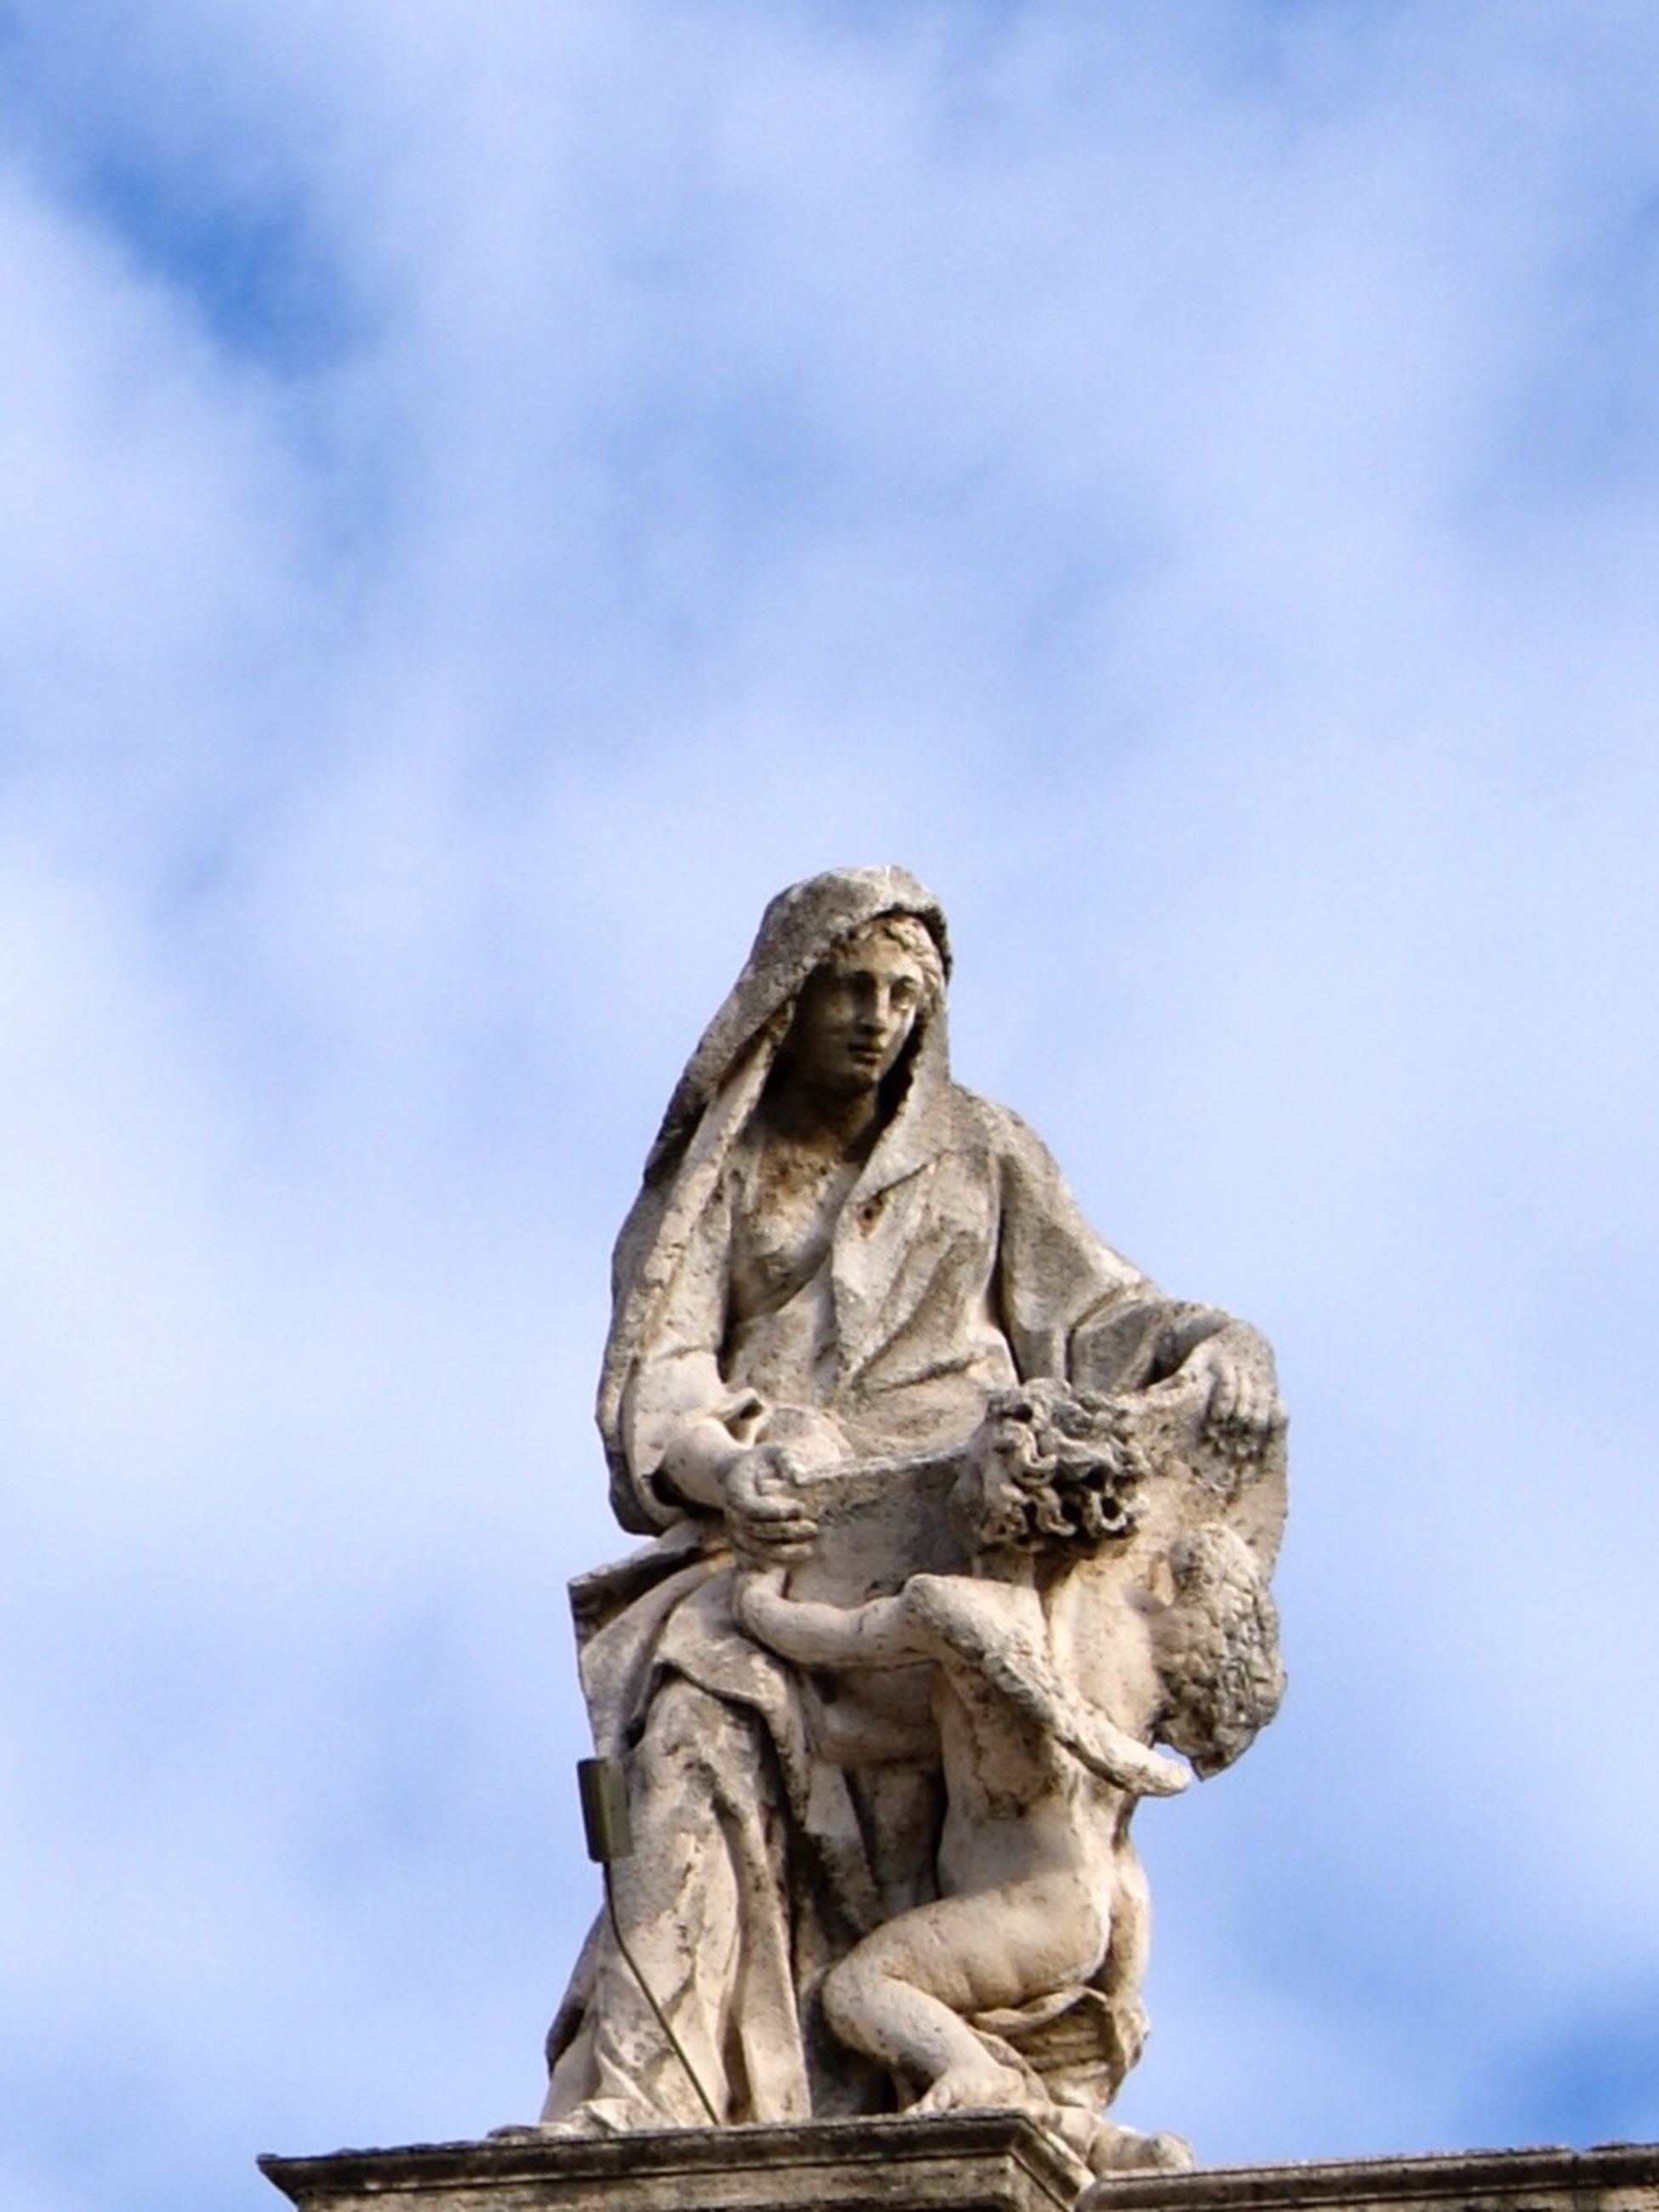 statue, sculpture, human representation, low angle view, art and craft, art, sky, creativity, cloud - sky, cloud, animal representation, outdoors, no people, cloudy, day, carving - craft product, angel, monument